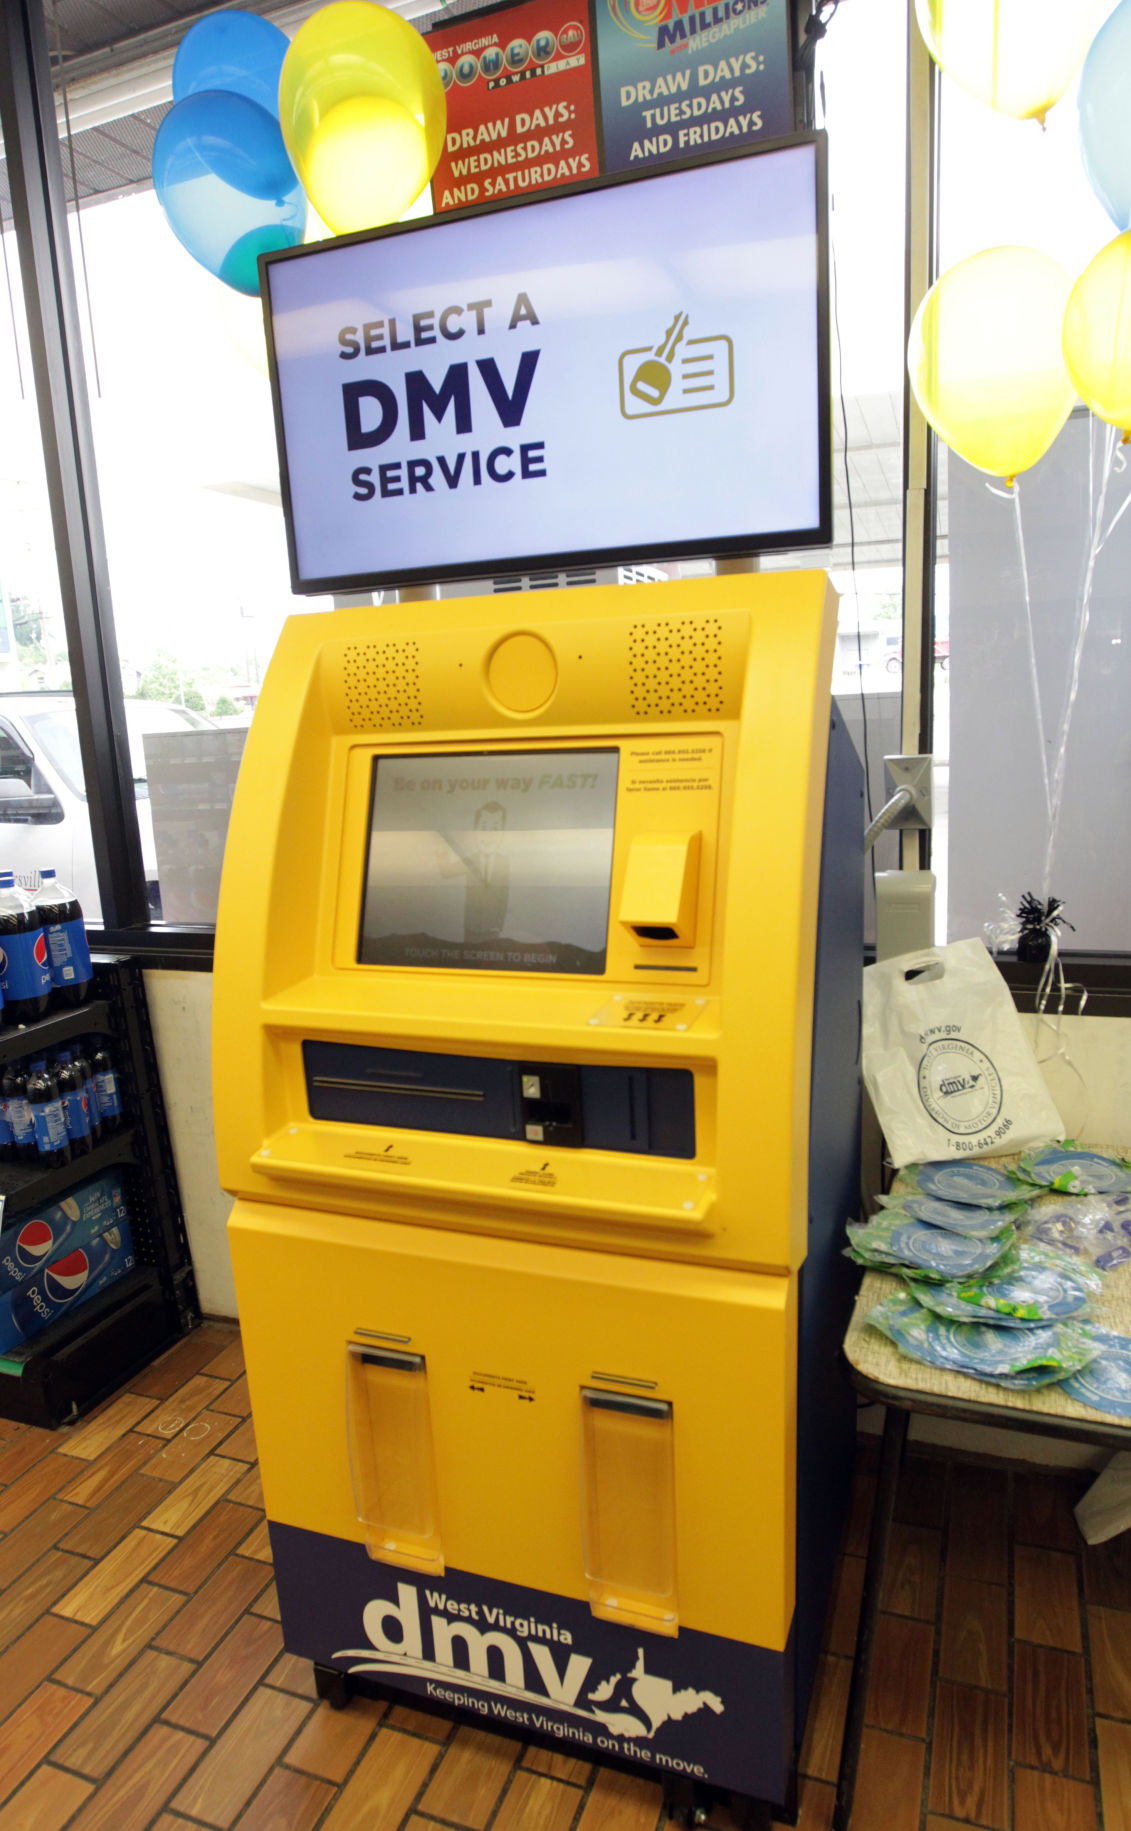 New DMV service kiosk unveiled in Barboursville | News